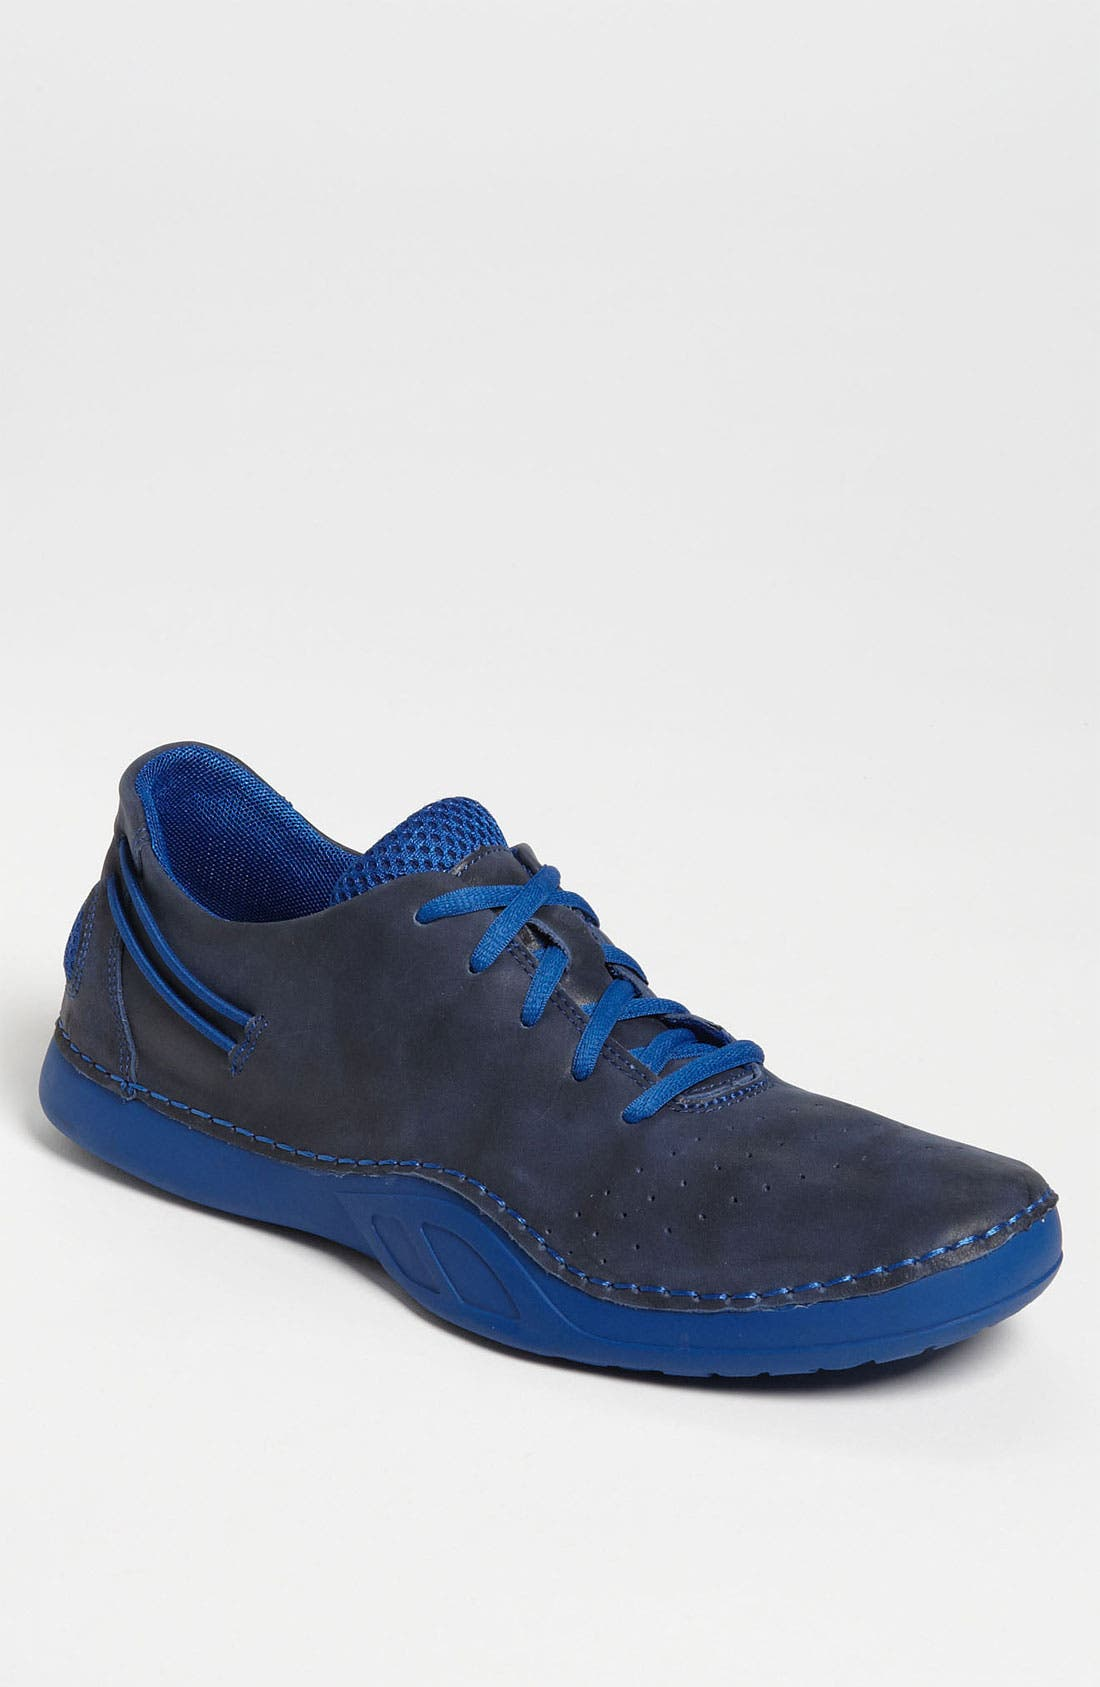 Main Image - Kenneth Cole Reaction 'Lift Off' Sneaker